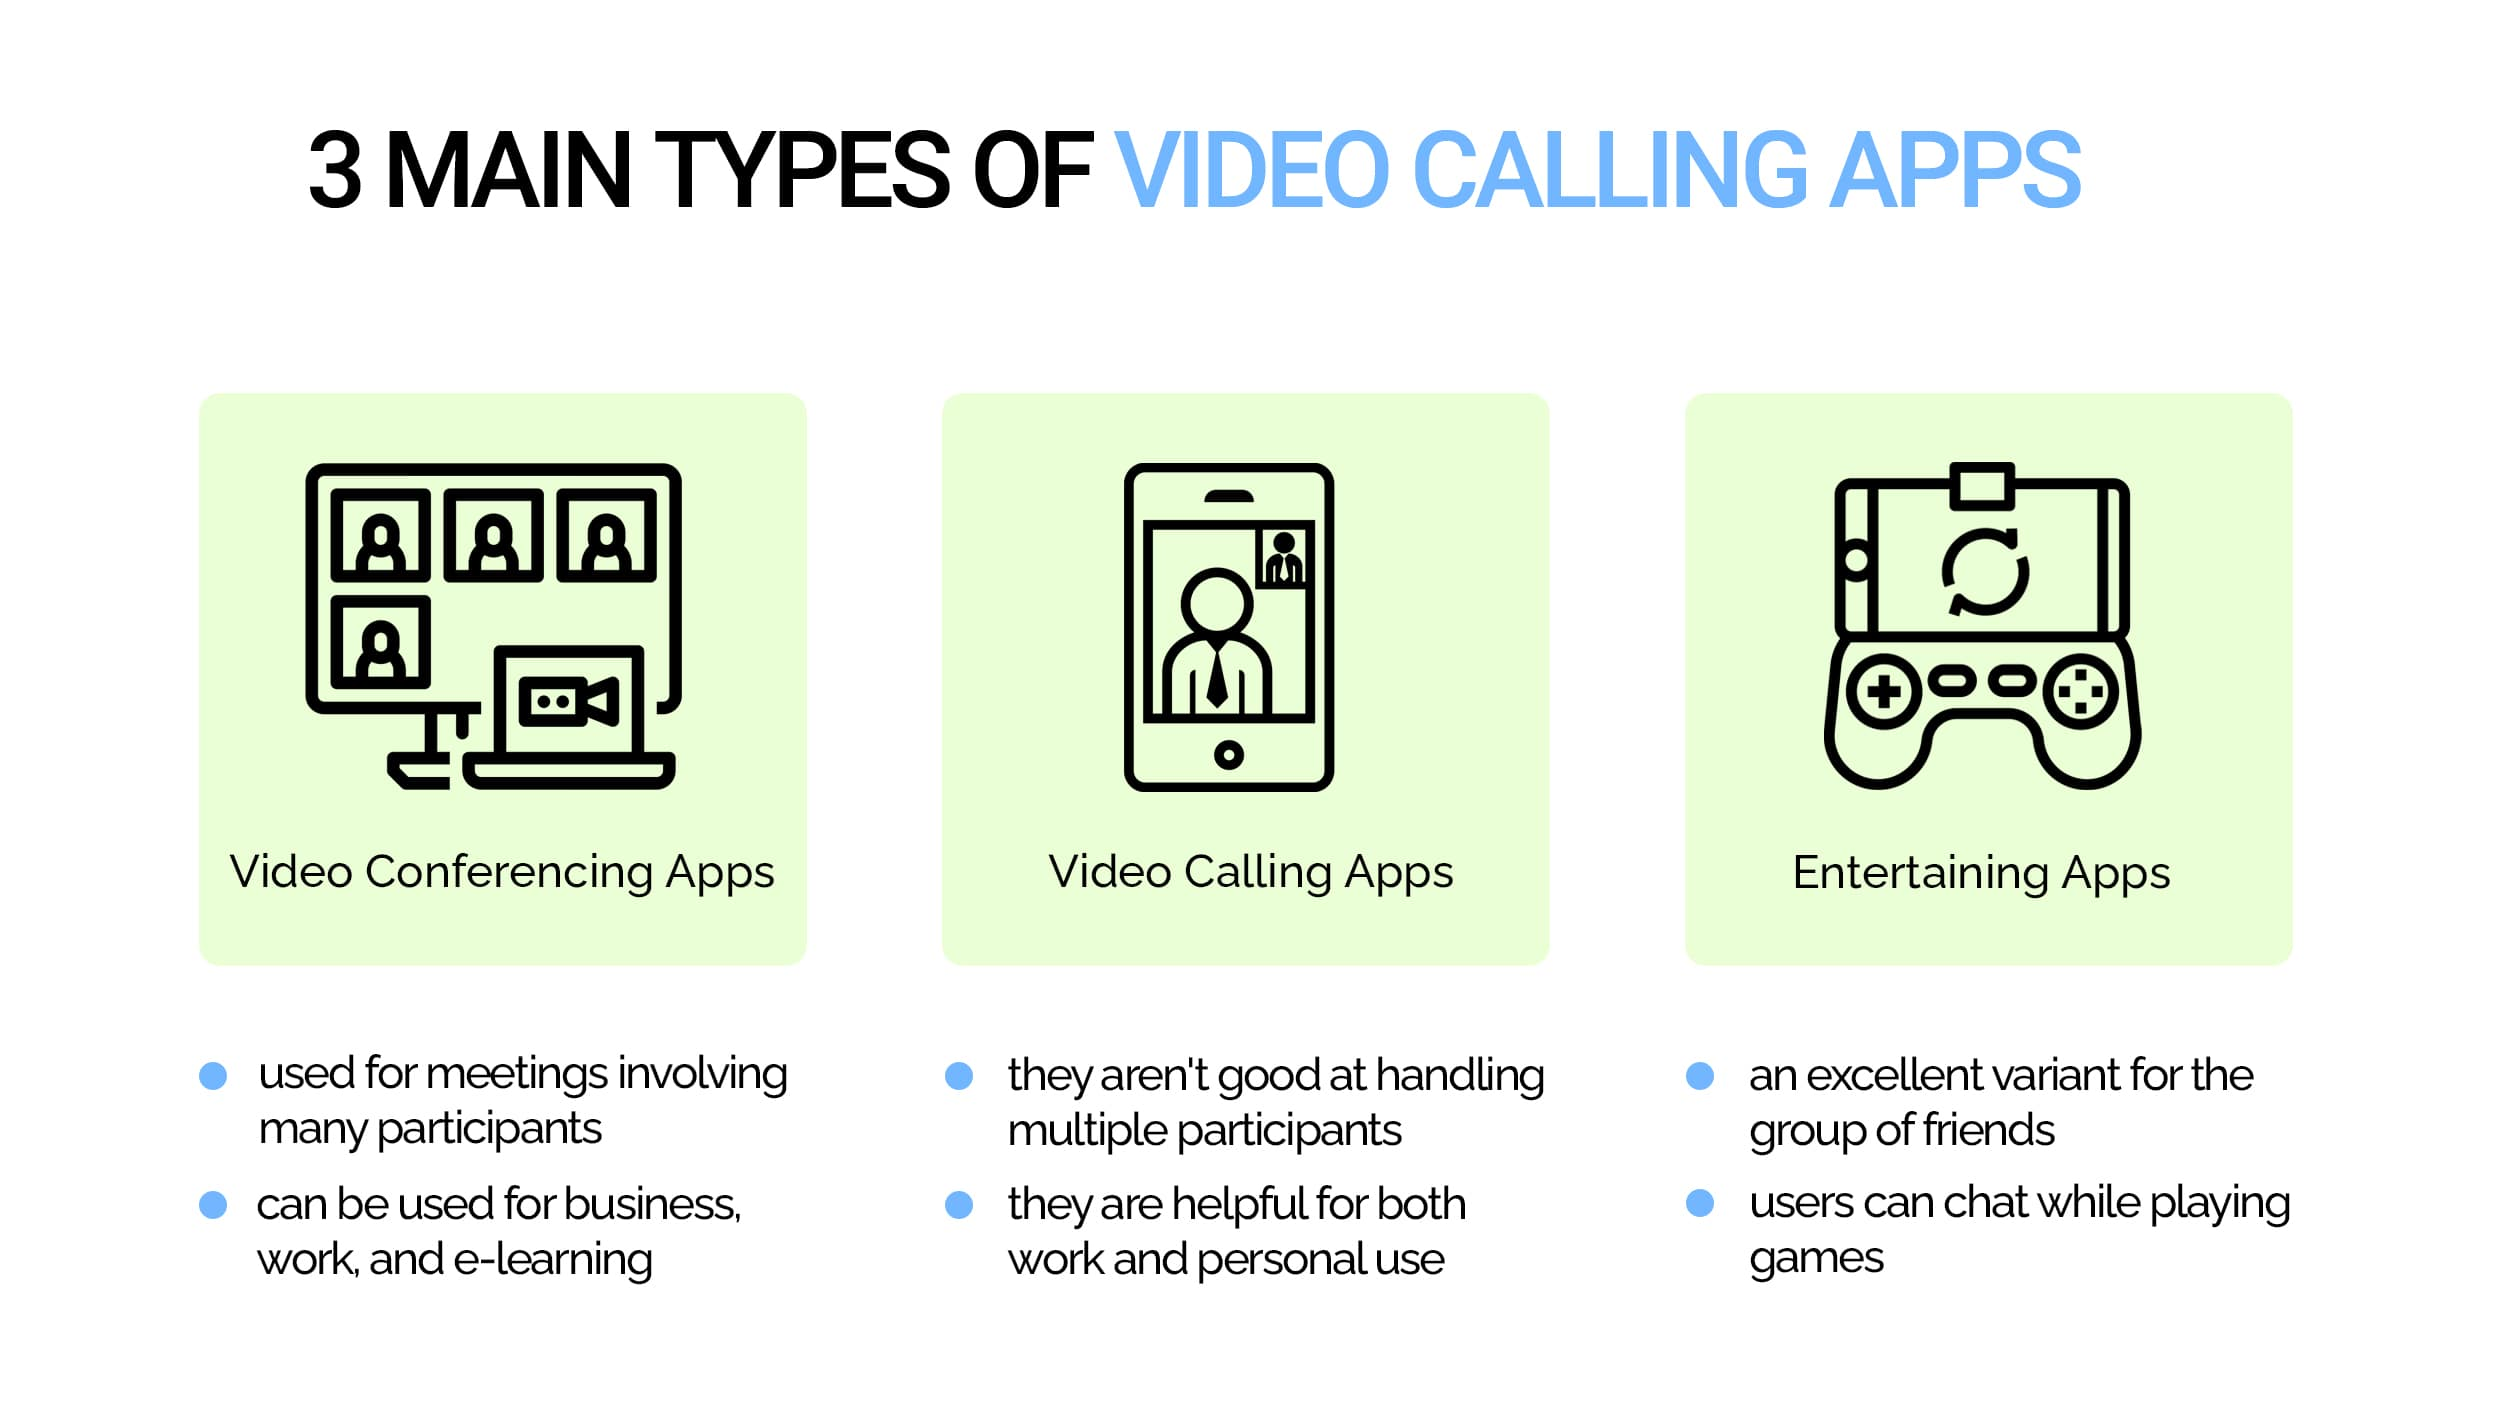 Main types of video calling apps